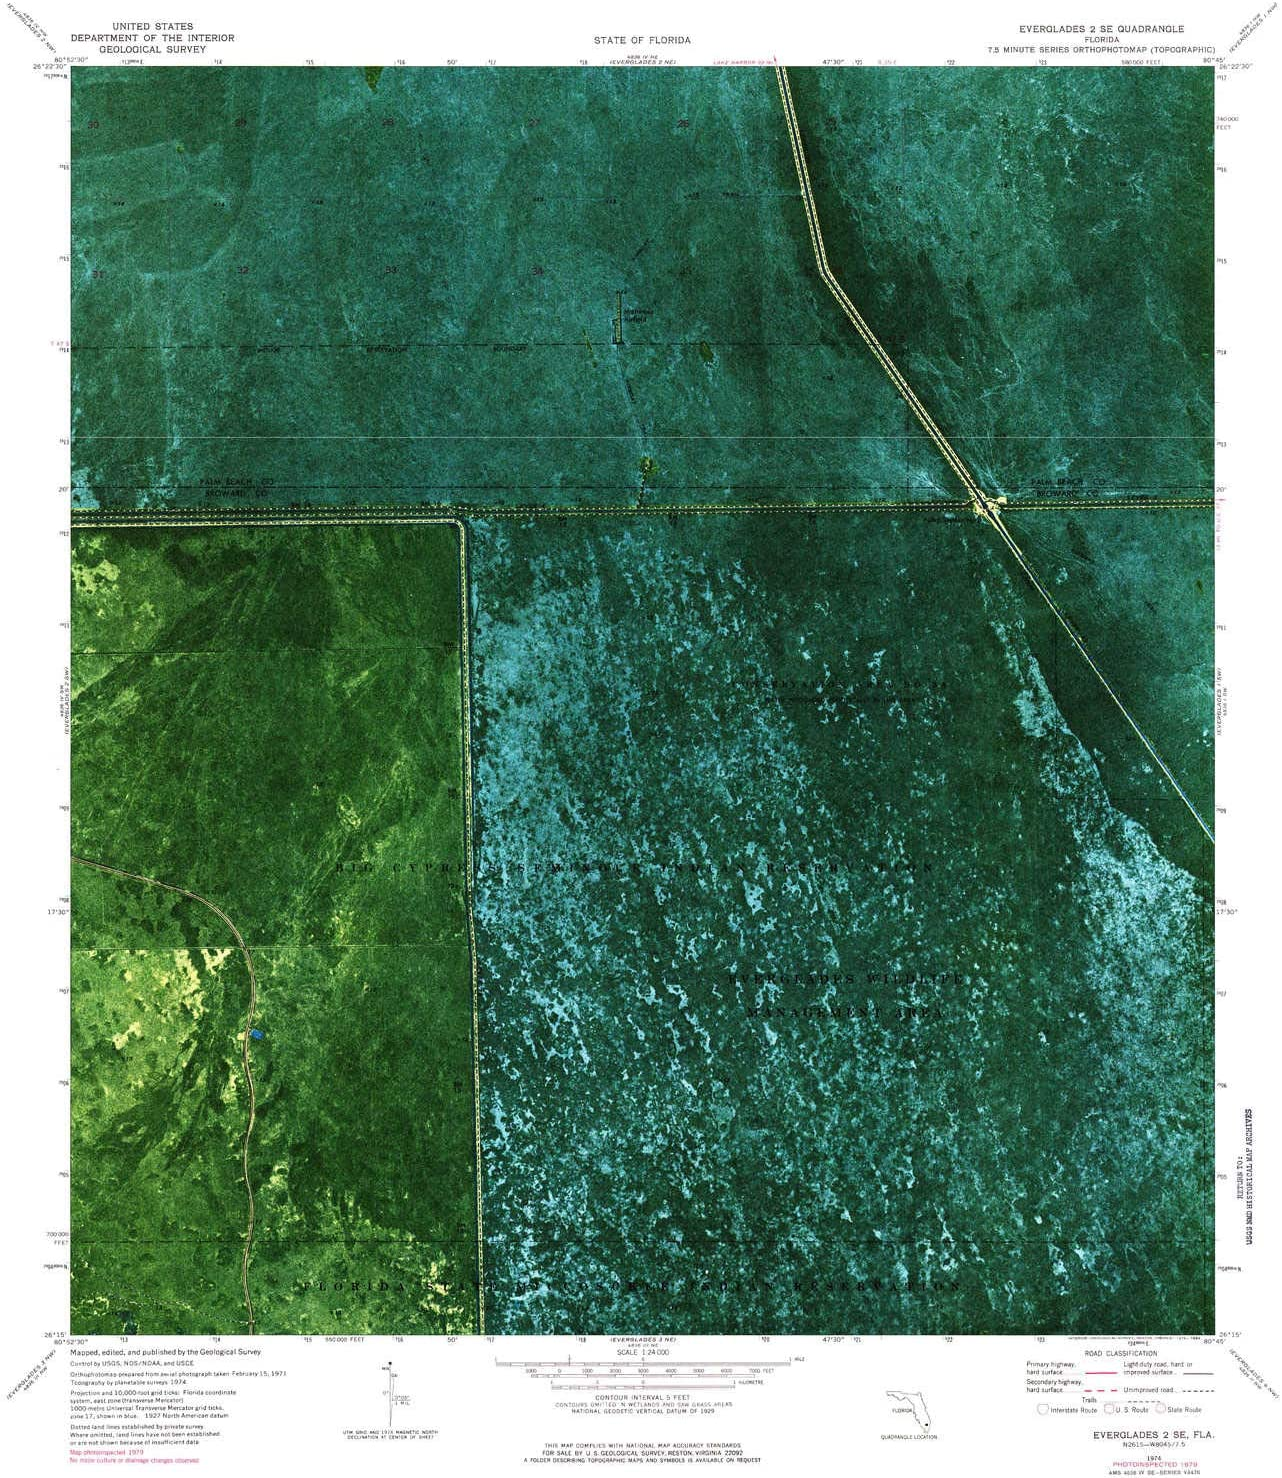 YellowMaps Everglades Don't miss the campaign 2 Popular product SE FL topo 7.5 1:24000 X Scale map